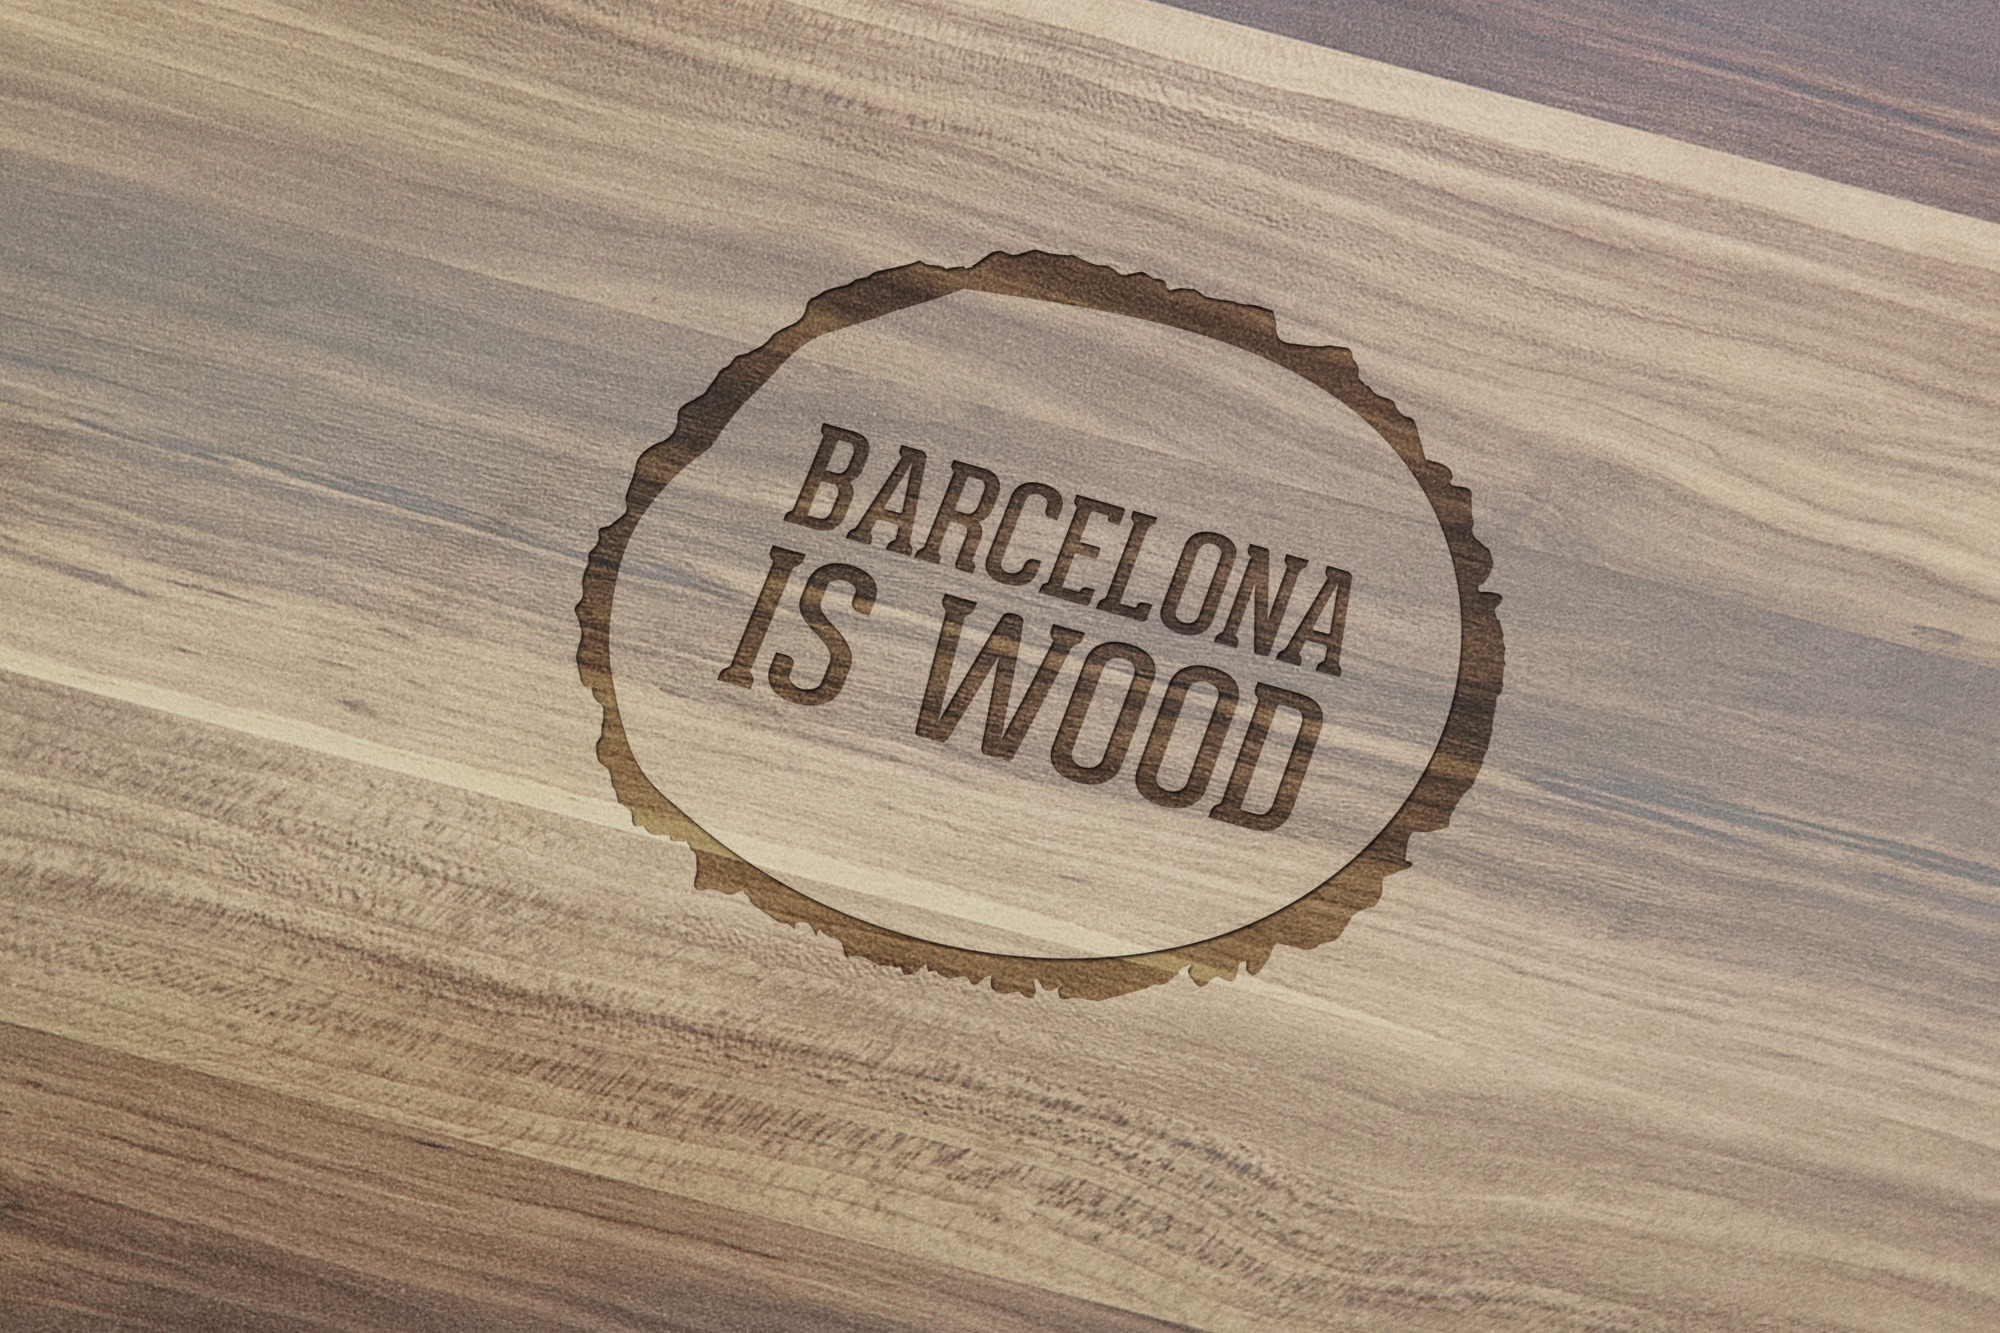 Barcelona Is Wood. Woodworks